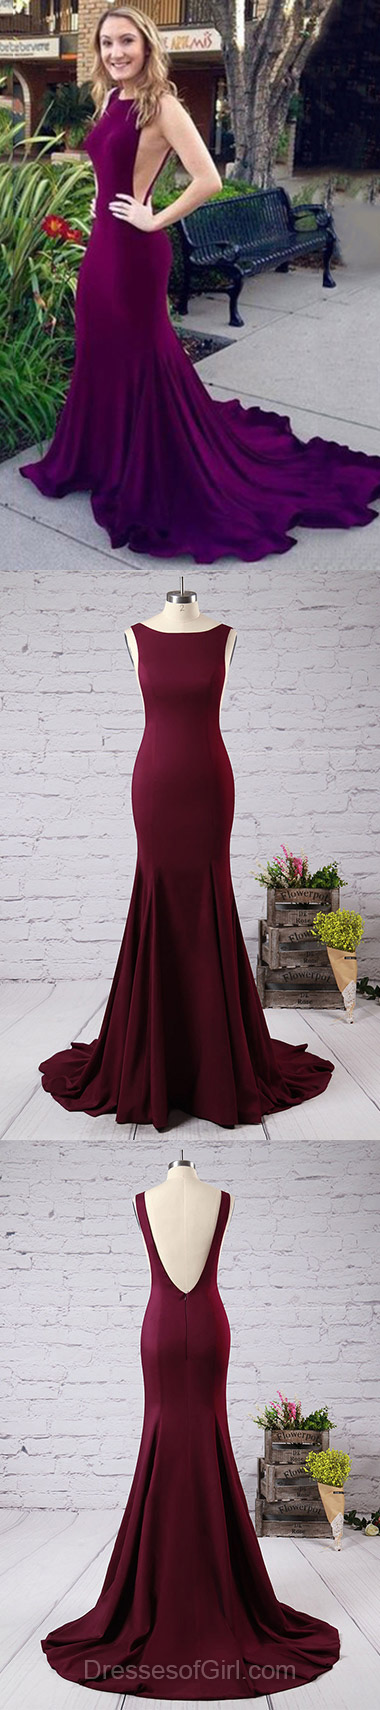 f5d640fee7 Unique Purple Prom Dress with Court Train